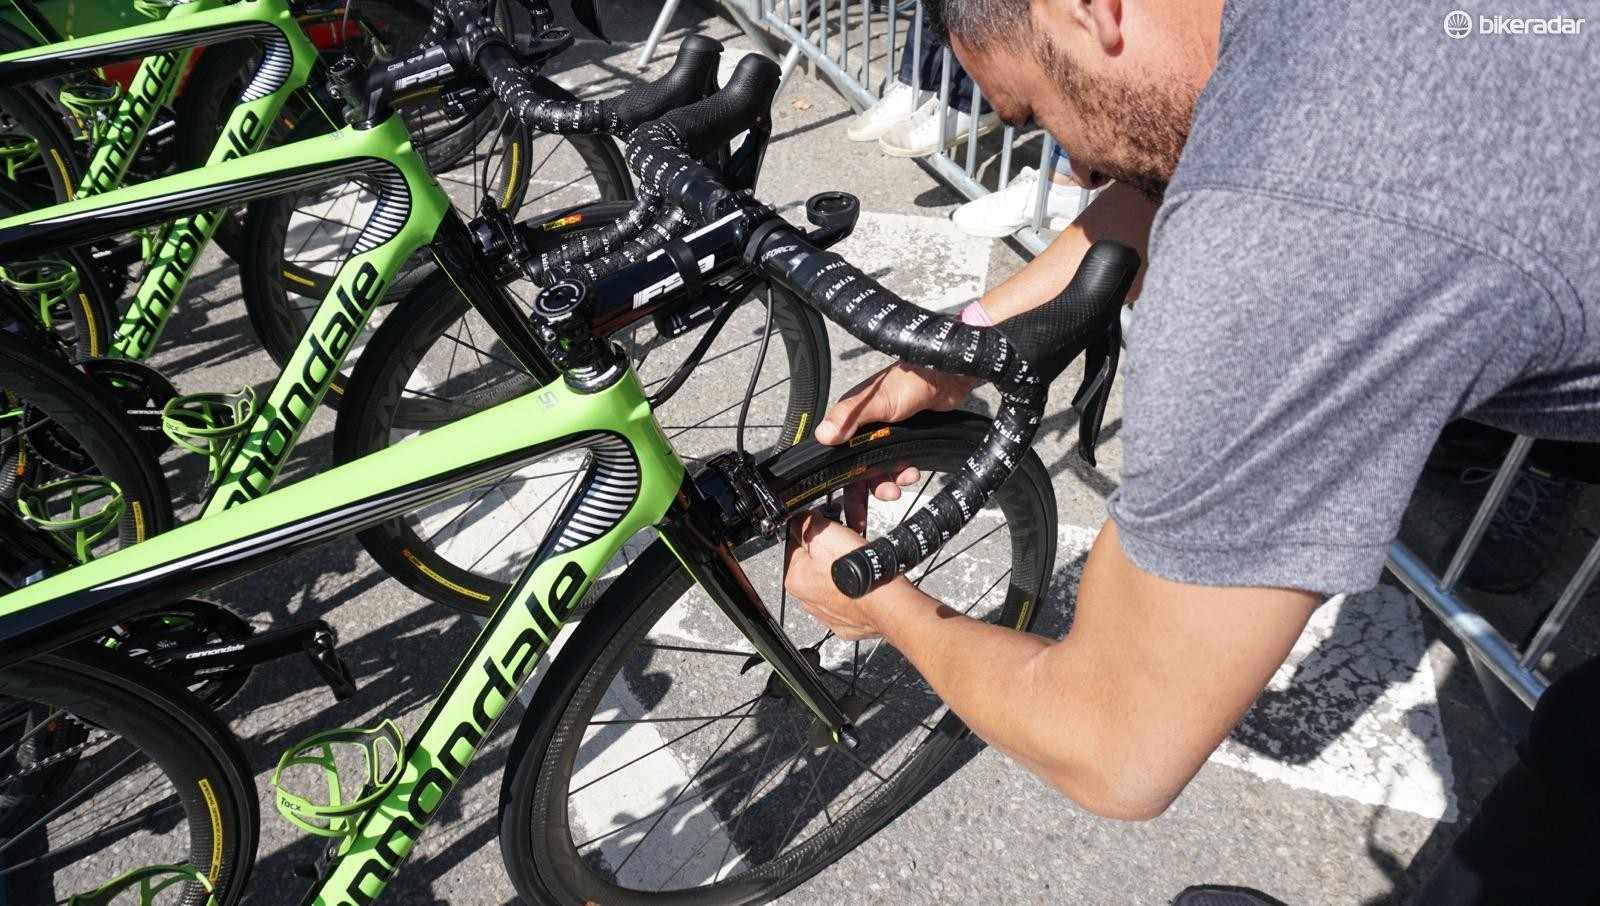 All but two Cannondale-Drapac riders use the same 7/7.5 bar air pressure